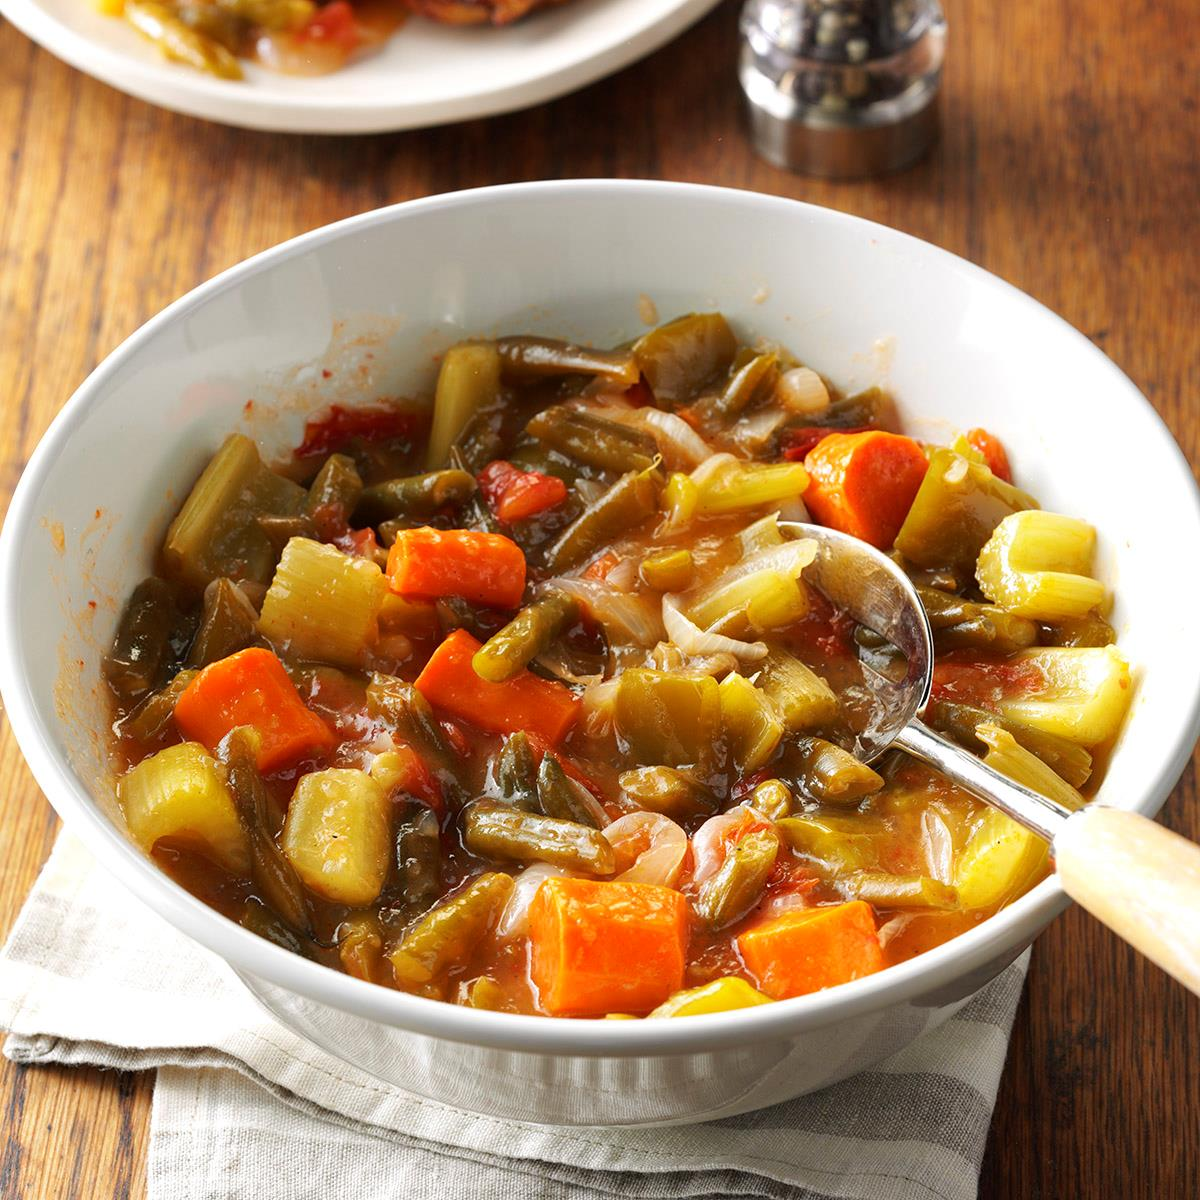 Slow-Cooked Vegetables image